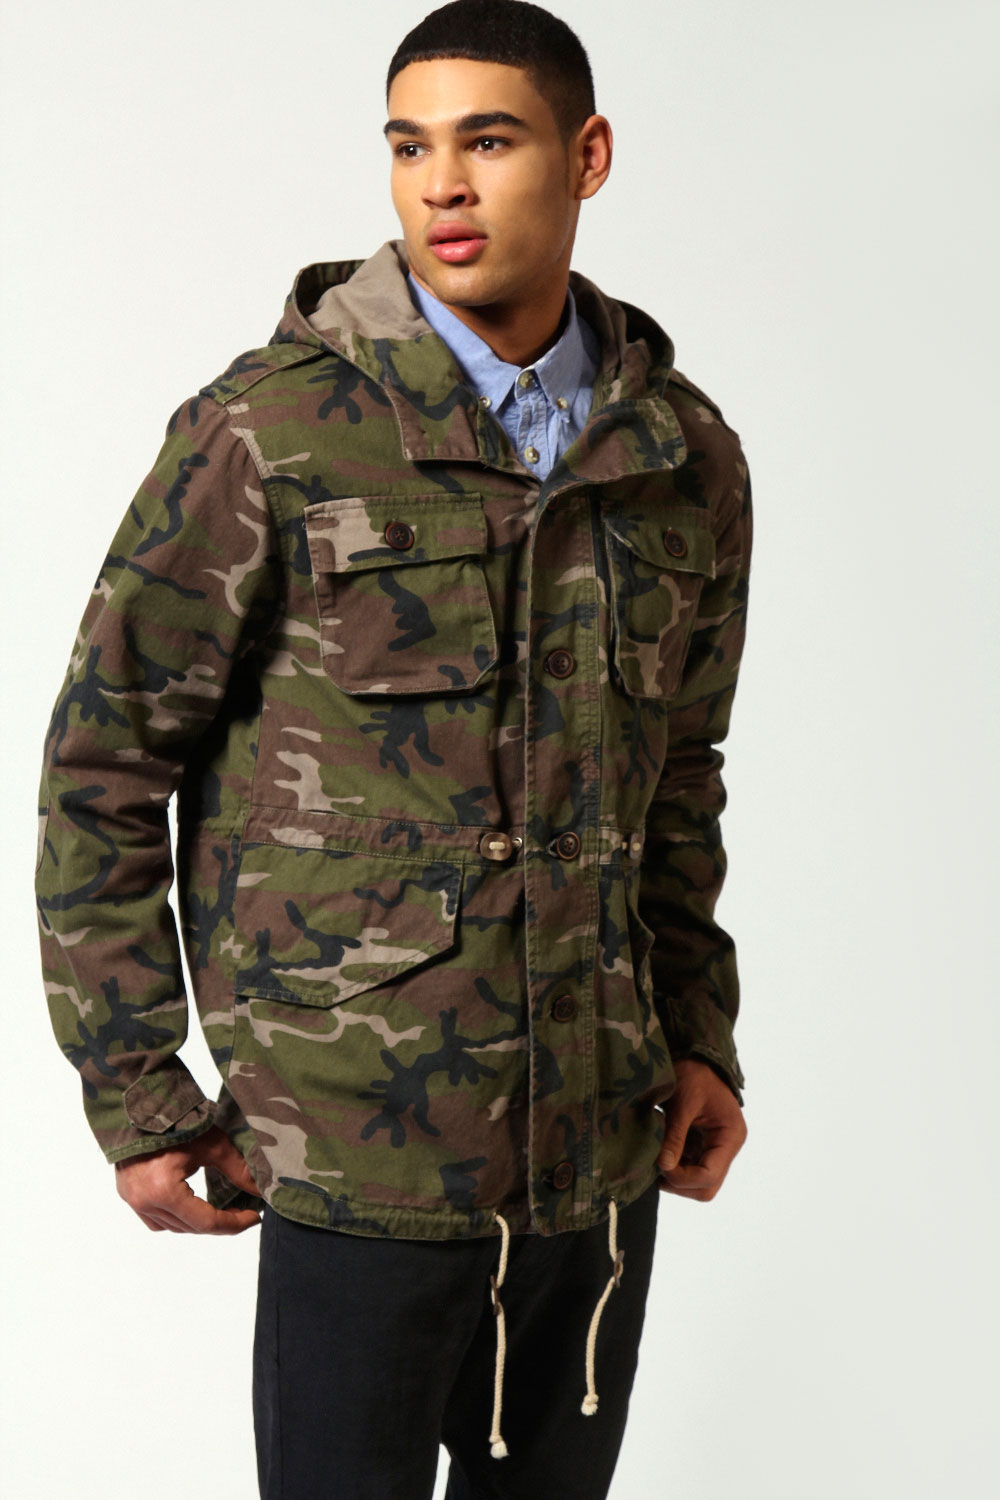 Men's coats and jackets from Timberland are brightening up rain wear with bold colours, deft detailing and classically cut silhouettes. From bomber jackets to rain macs and blazers, our collection of men's outerwear uses the latest in fabric technology to create stylish waterproof jackets for men.